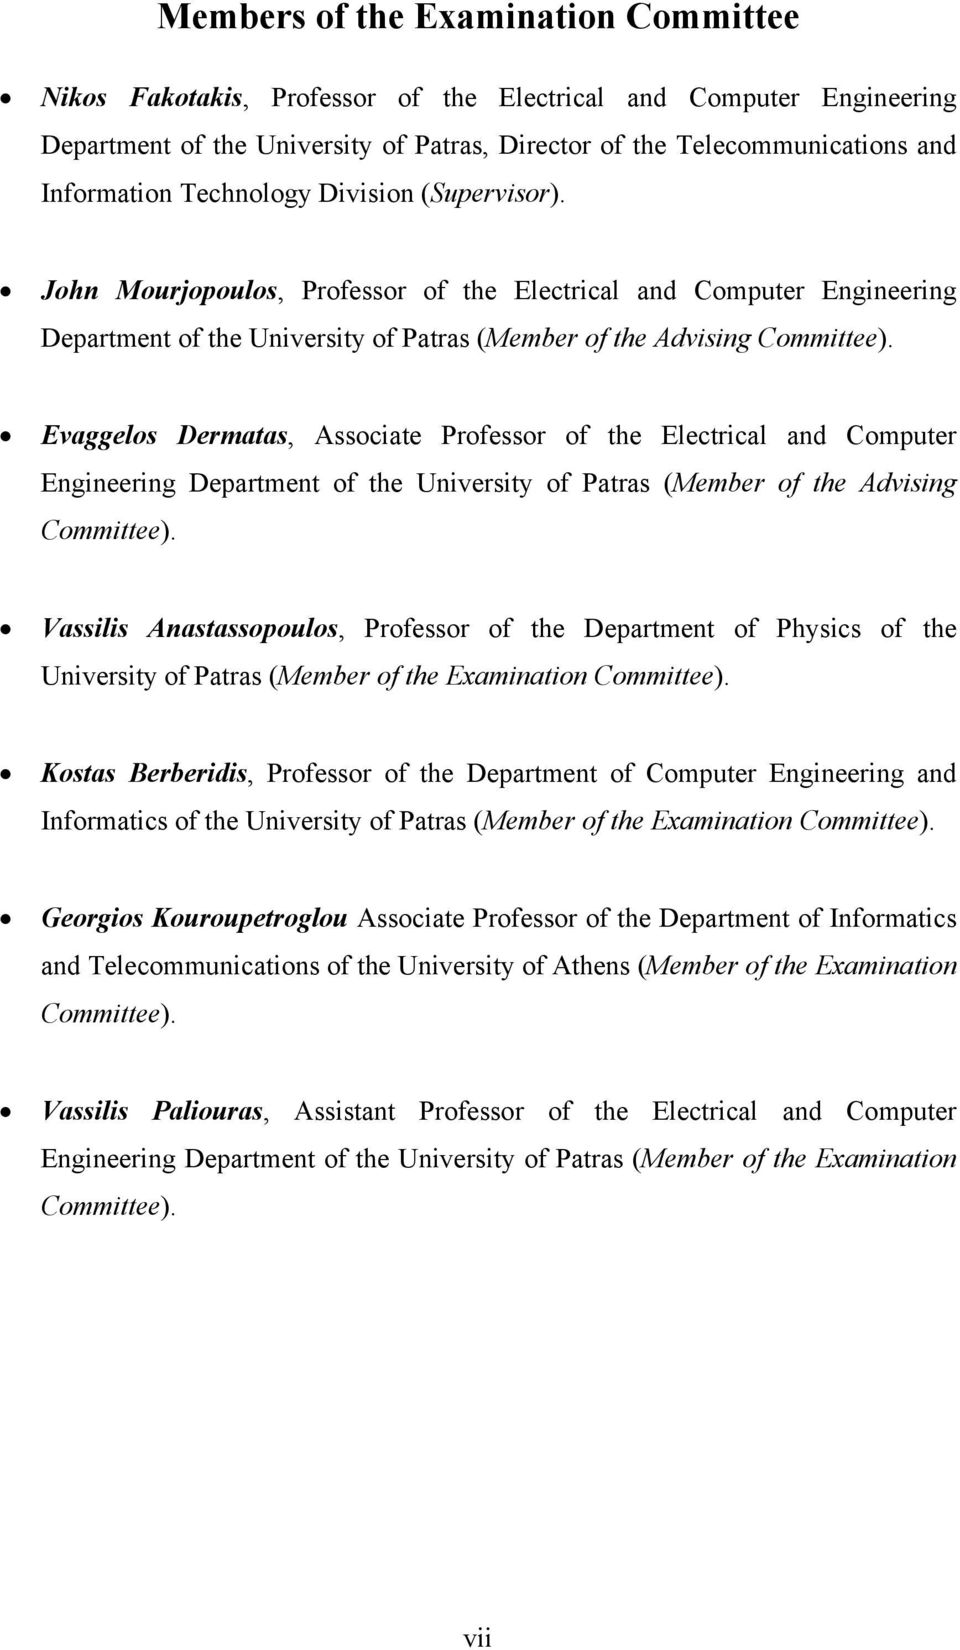 Evaggelos Dermatas, Associate Professor of the Electrical and Computer Engineering Department of the University of Patras (Member of the Advising Committee).